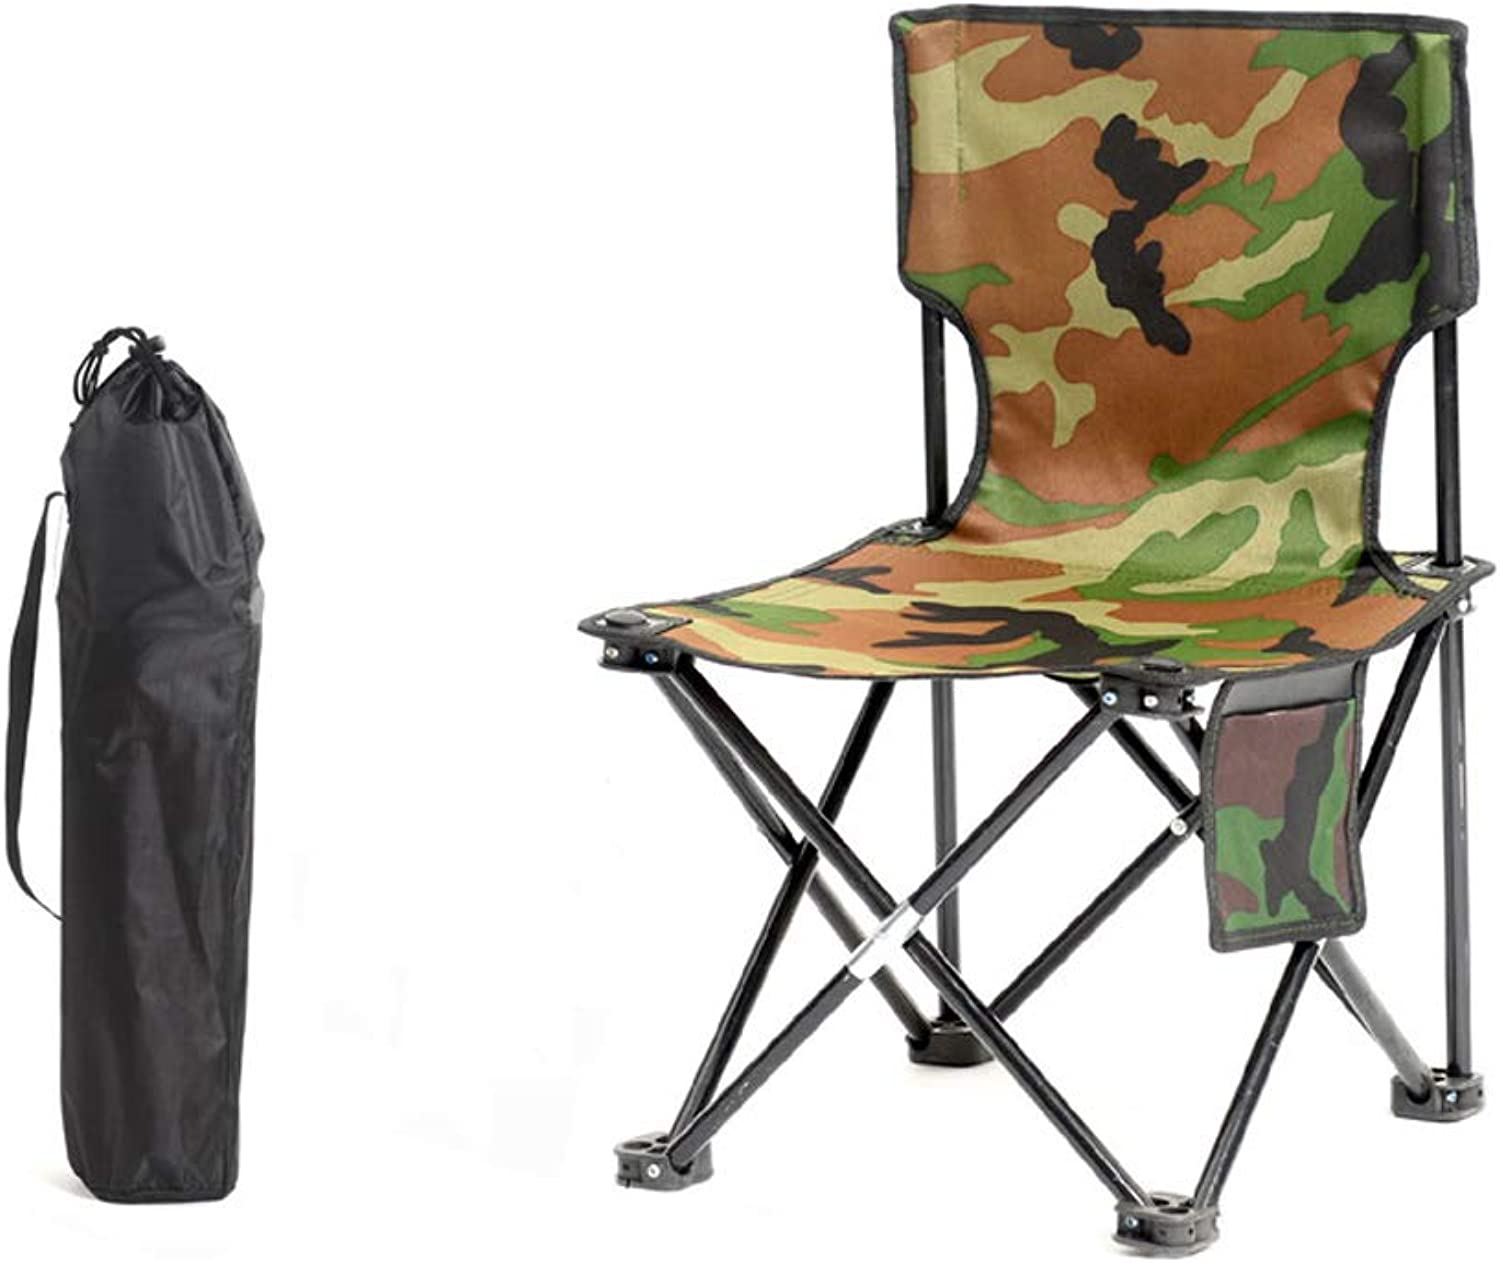 MXD Chair Outdoor Folding Chair Portable Camping Beach Fishing Chair Stool Folding Stool Camouflage (Size   M)